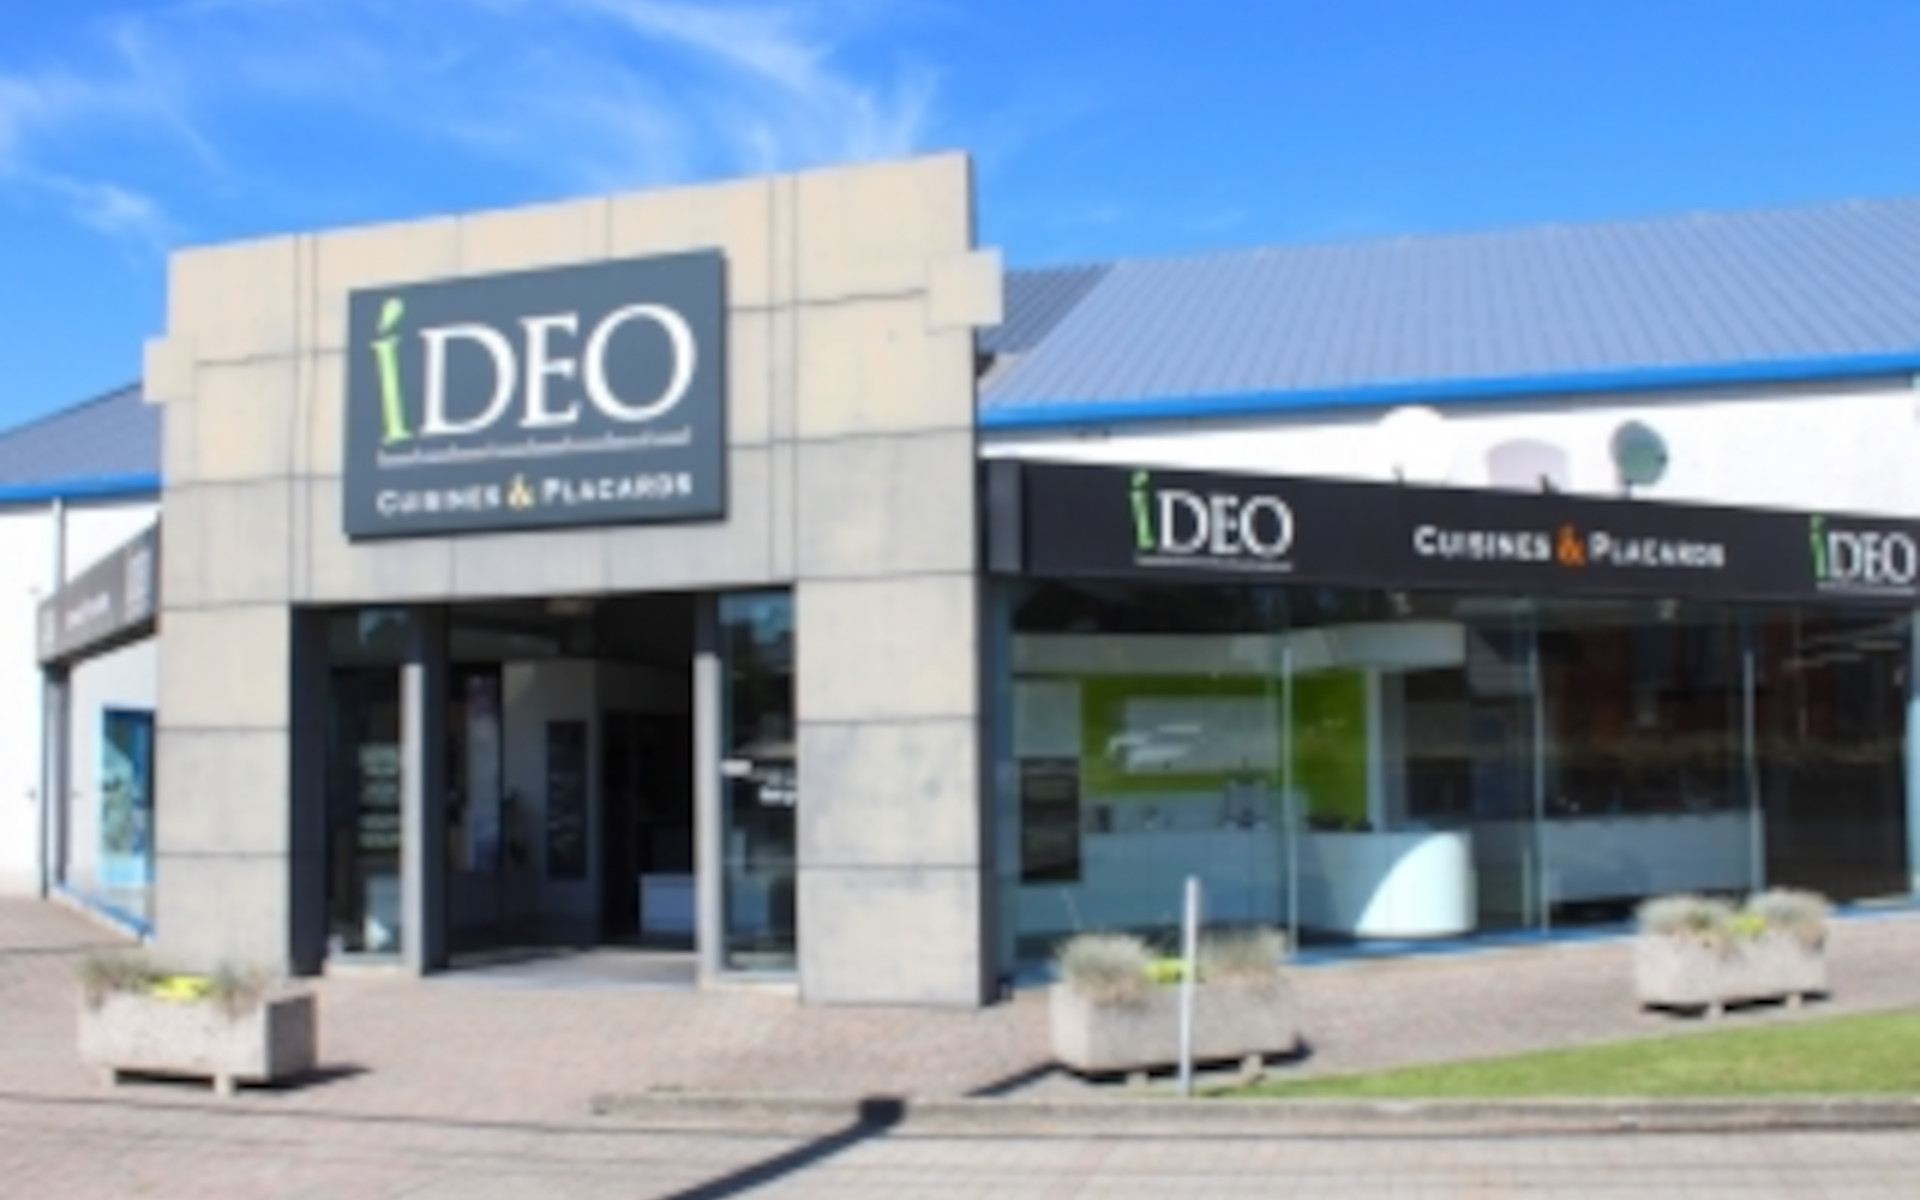 Idéo cuisines et dressings showroom de Bastogne